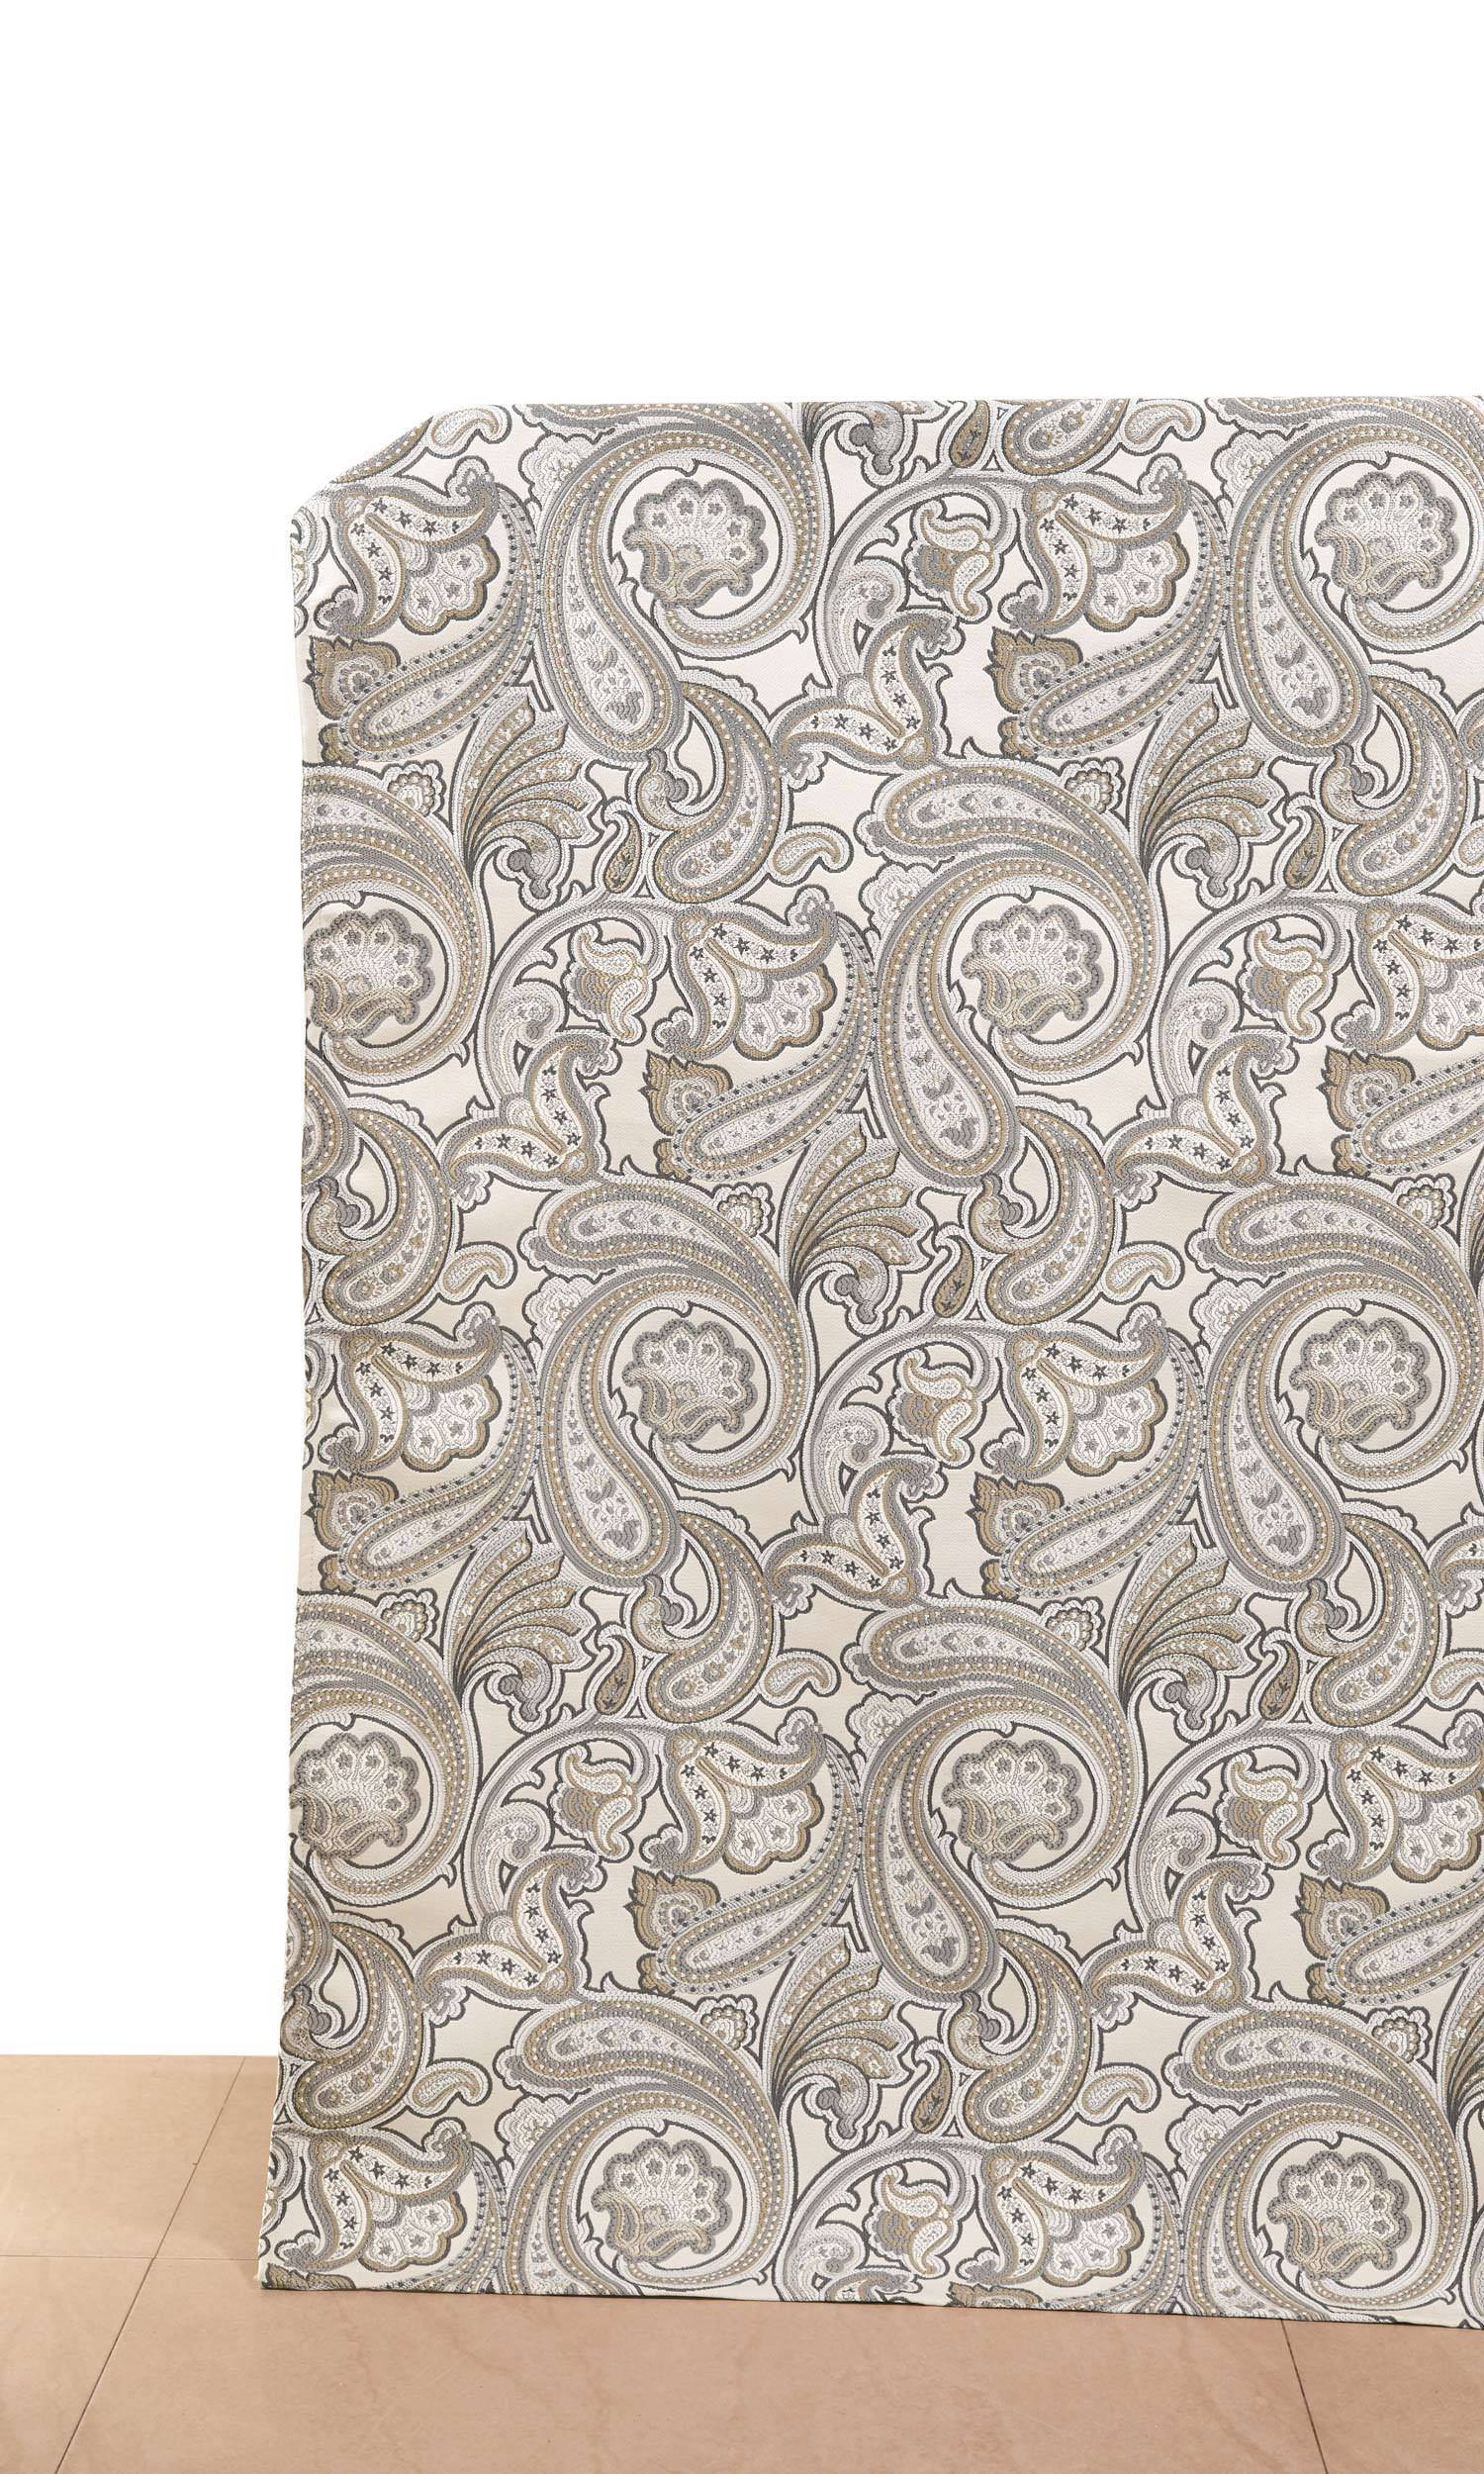 e0091d611f2 Harbor Greige' Fabric Swatch (Pale Beige/Graphite Gray/ Charcoal ...